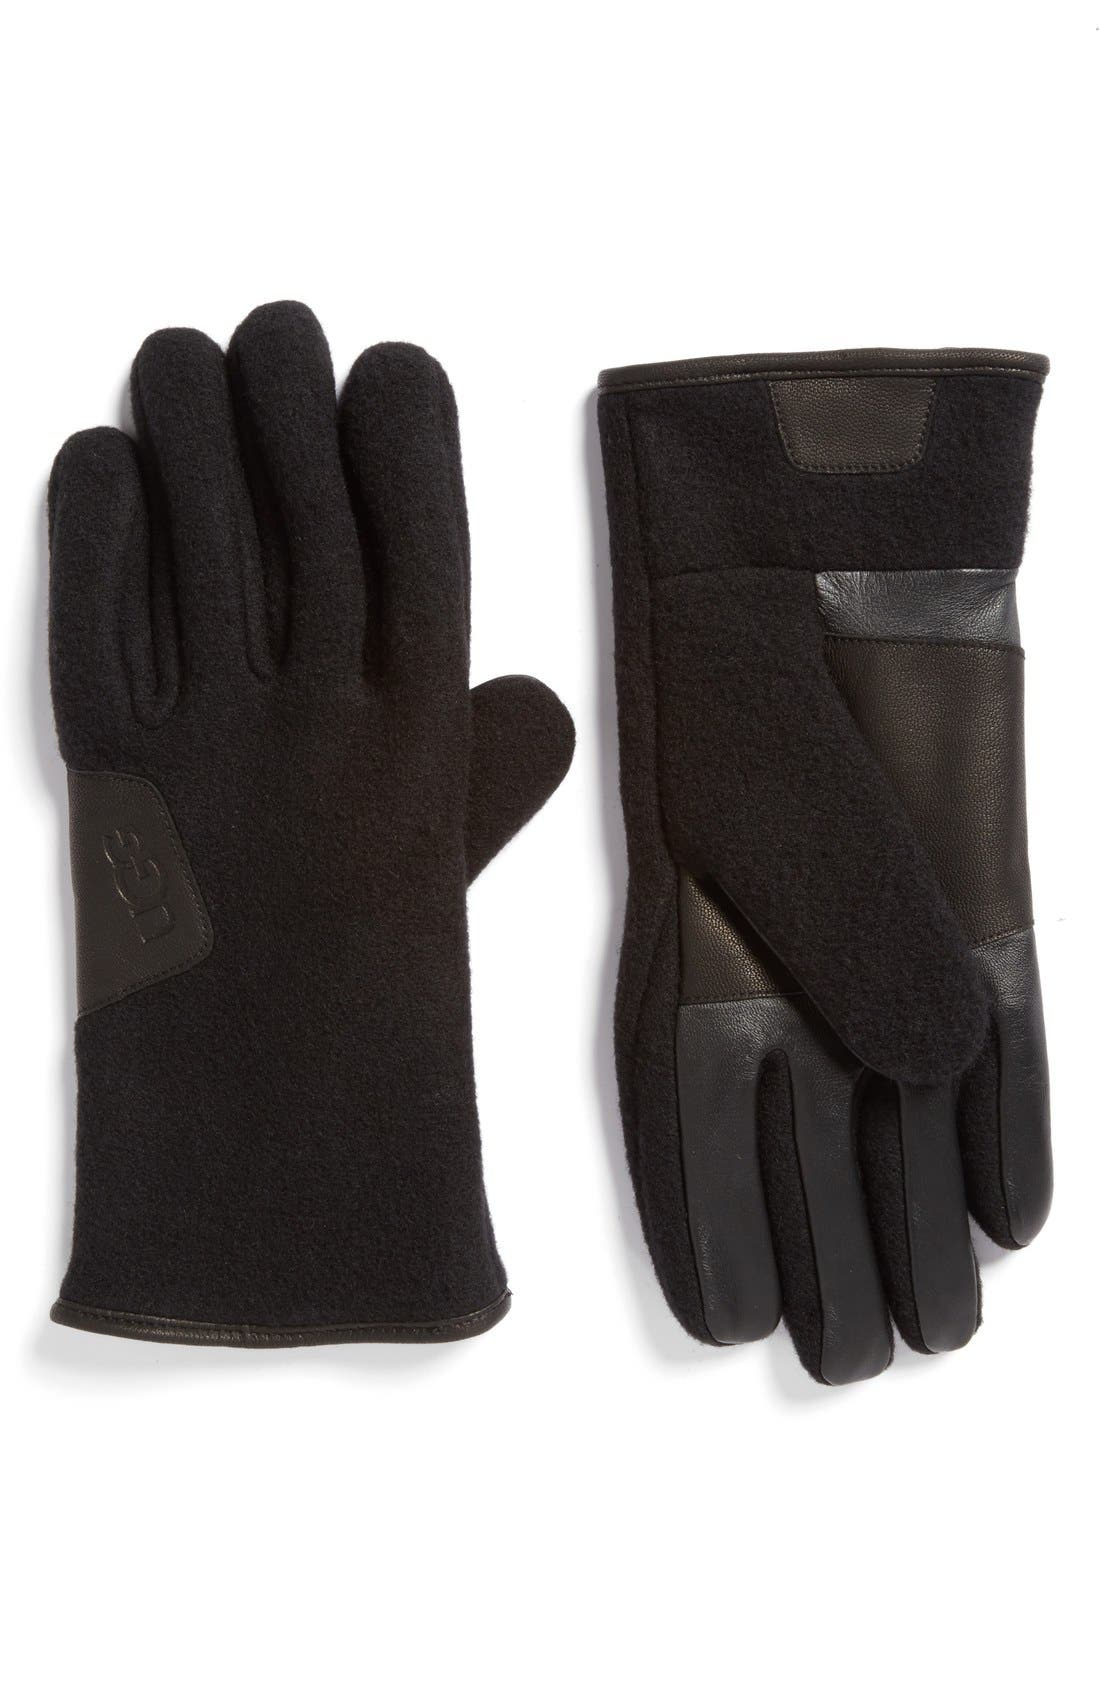 Wool Blend Tech Gloves,                         Main,                         color, 001